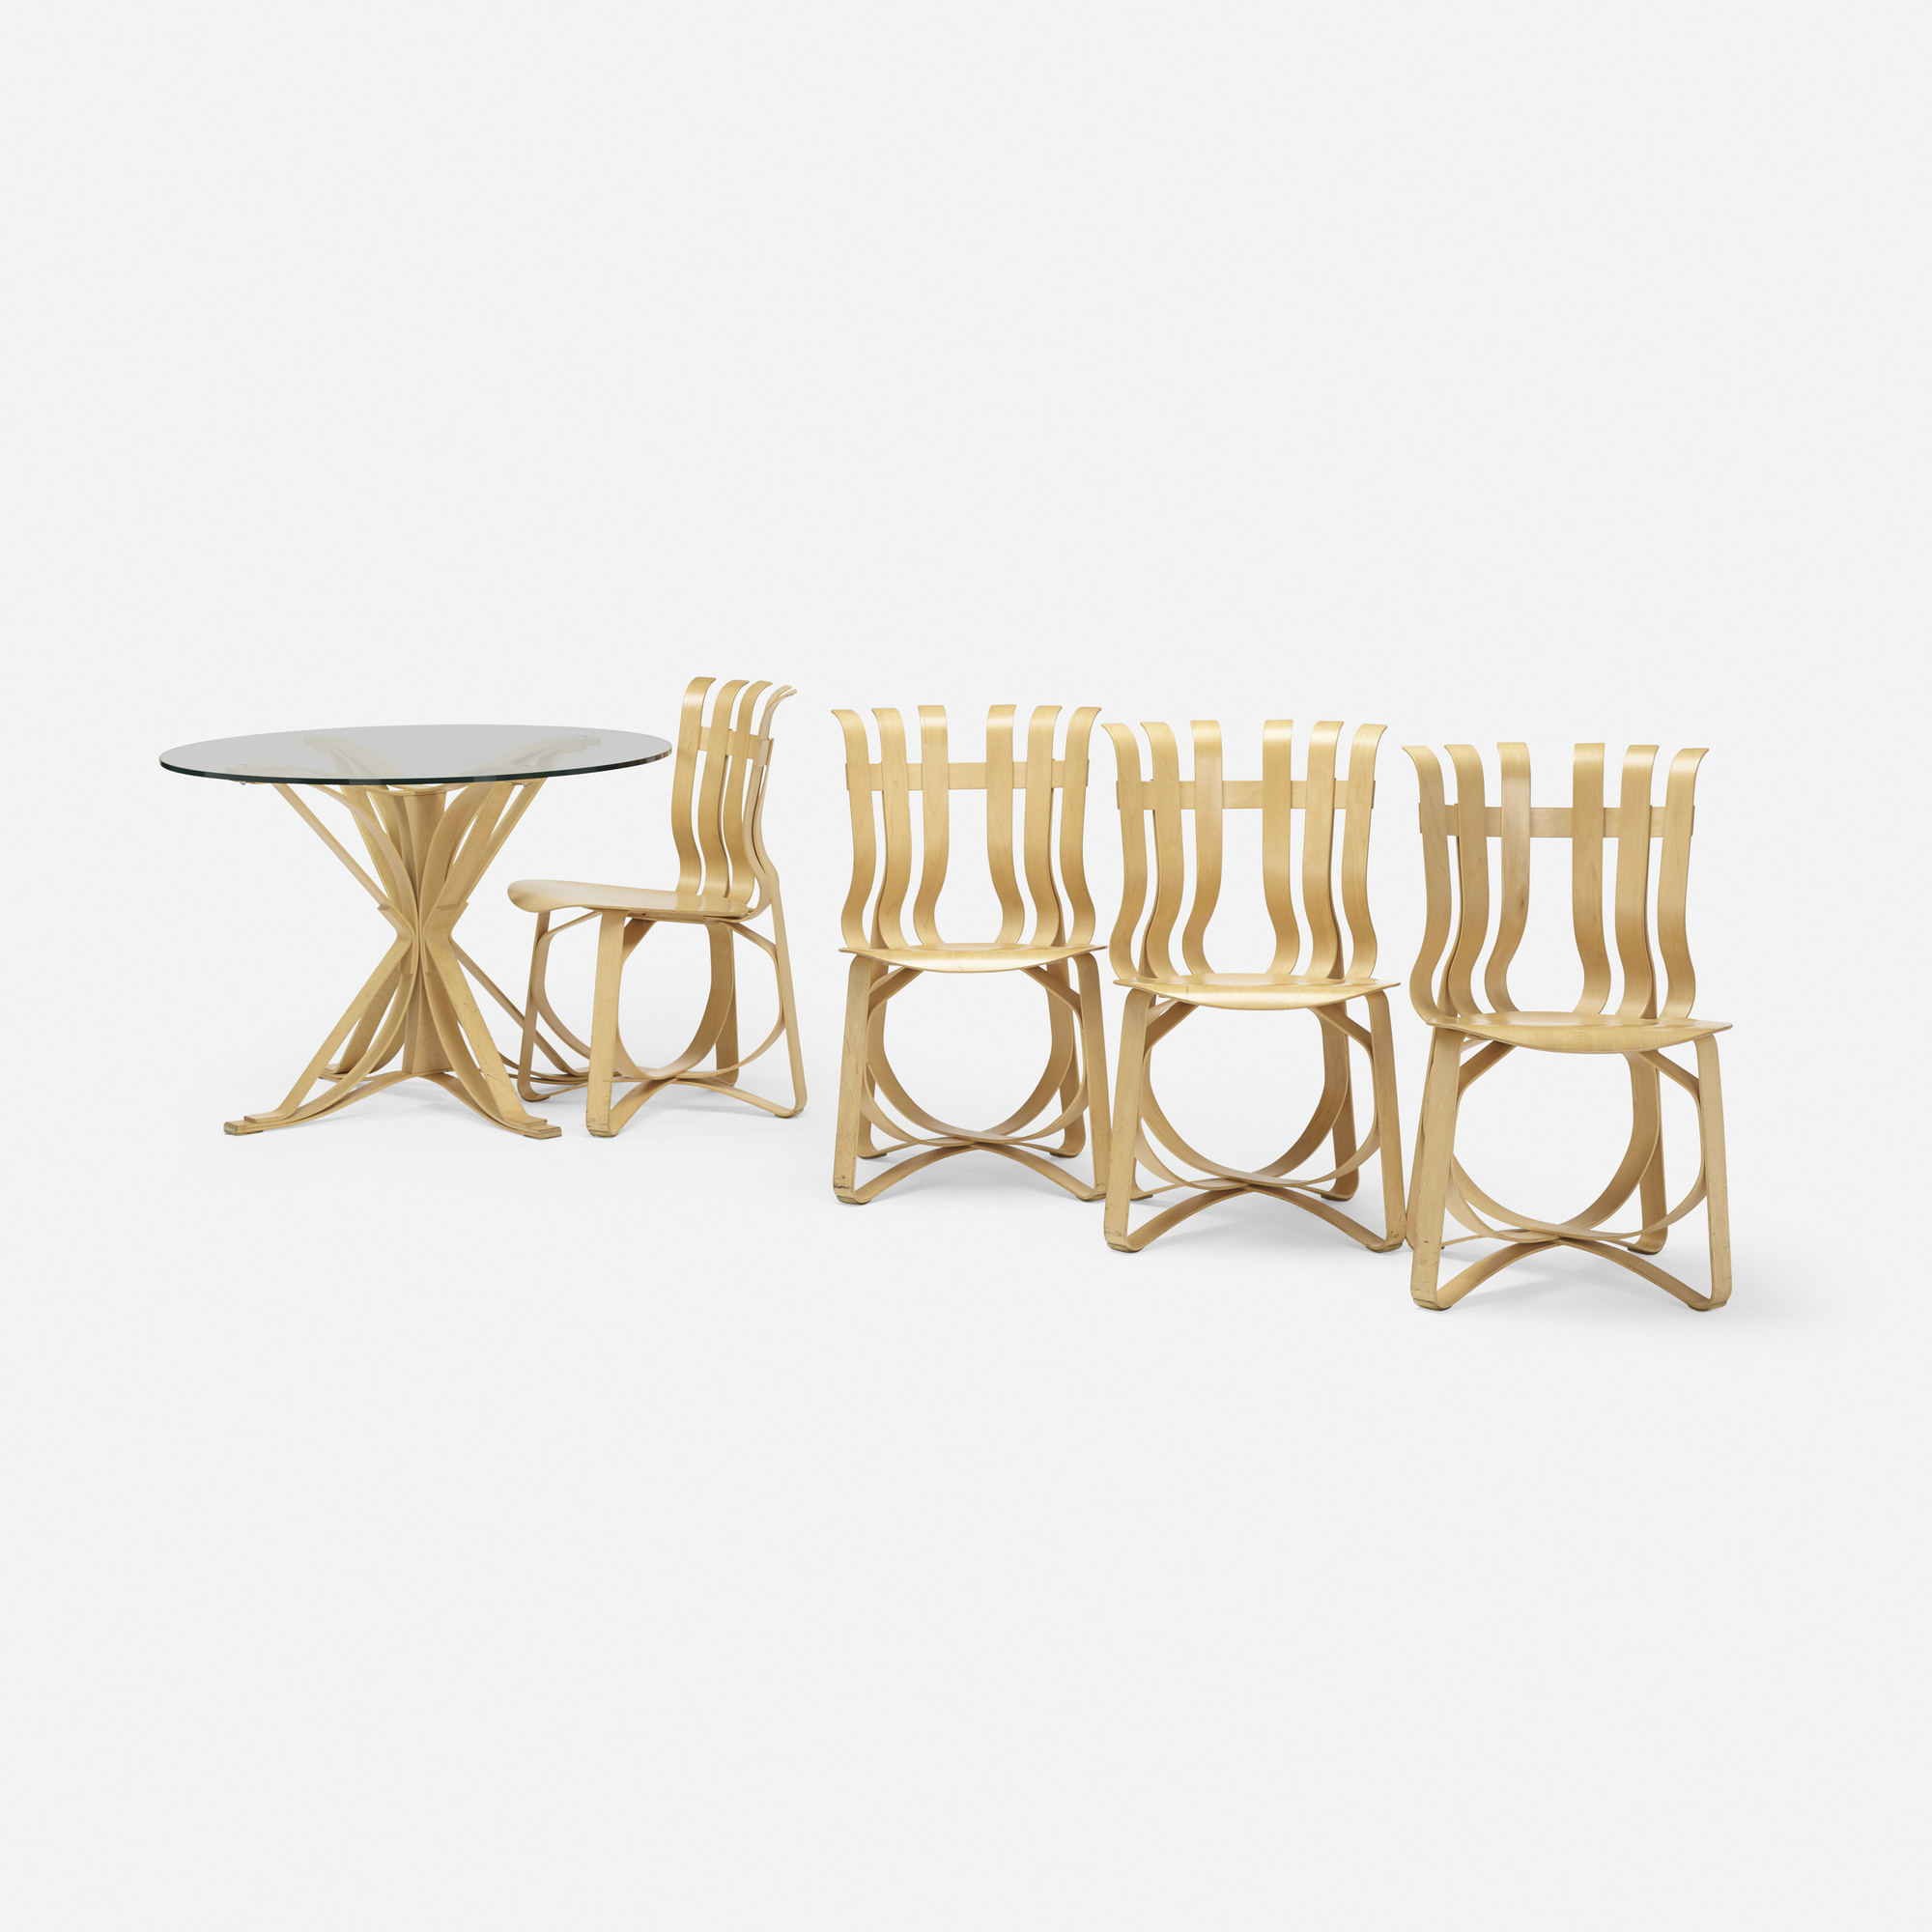 304: Frank Gehry / Power Play dining set (1 of 3)